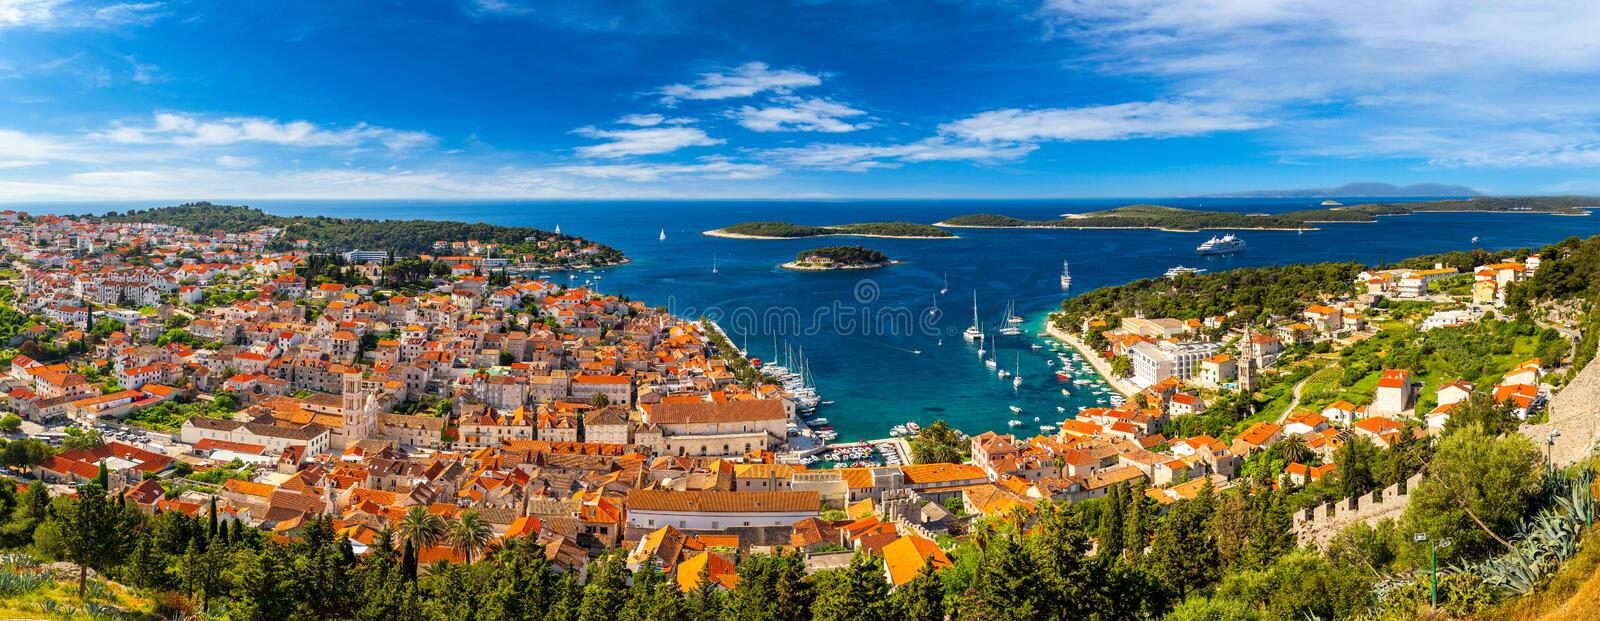 Panorama view at amazing archipelago in front of town Hvar, Croatia. Harbor of old Adriatic island town Hvar. Amazing Hvar city on royalty free stock photo